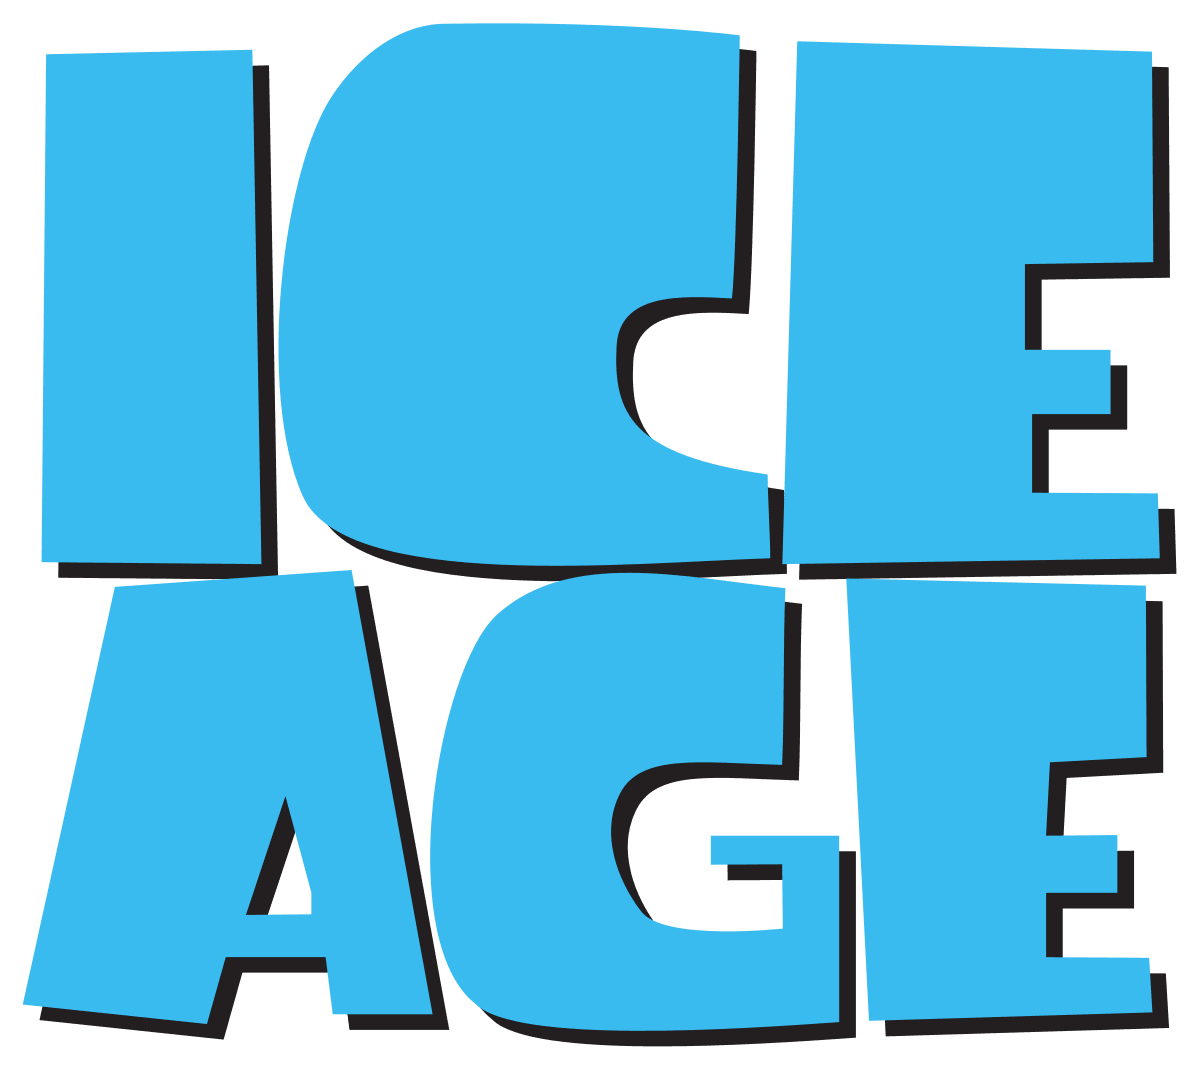 ICE AGE 1 PC Game Free Download Full Version